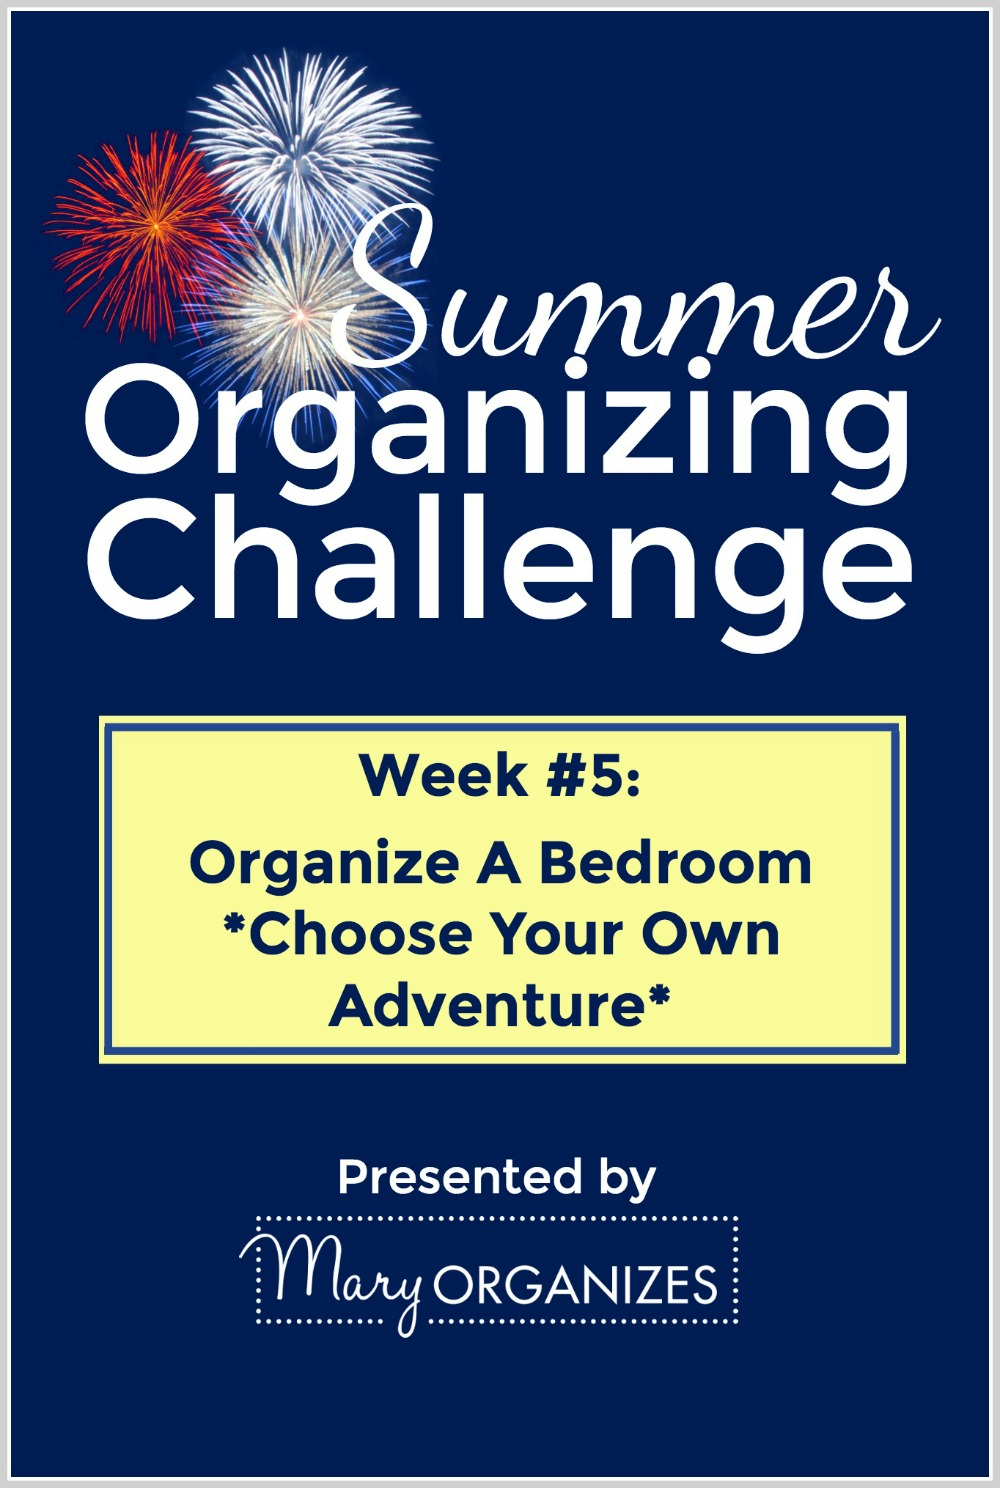 Week 5 - Organize A Bedroom - Choose Your Own Adventer -v